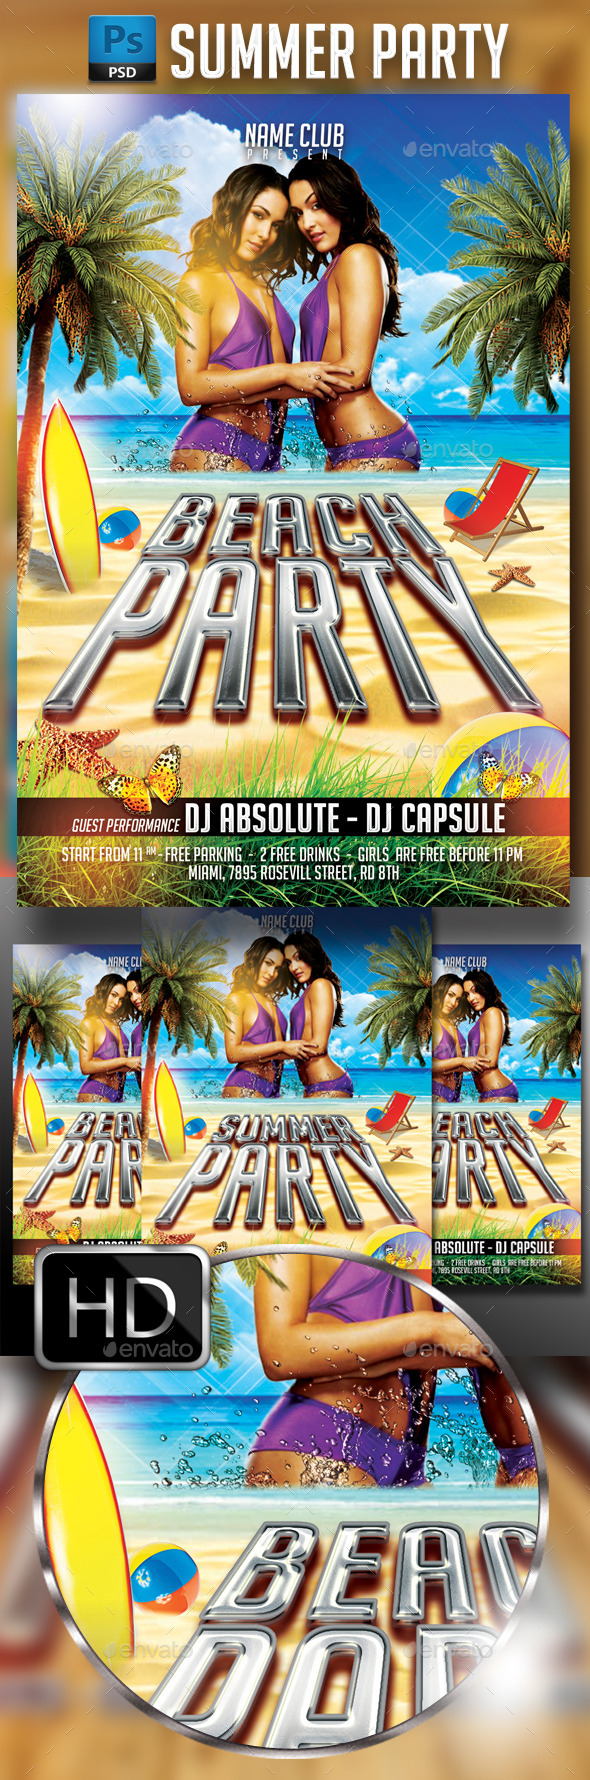 Summer Party Flyer Template 4 - Events Flyers